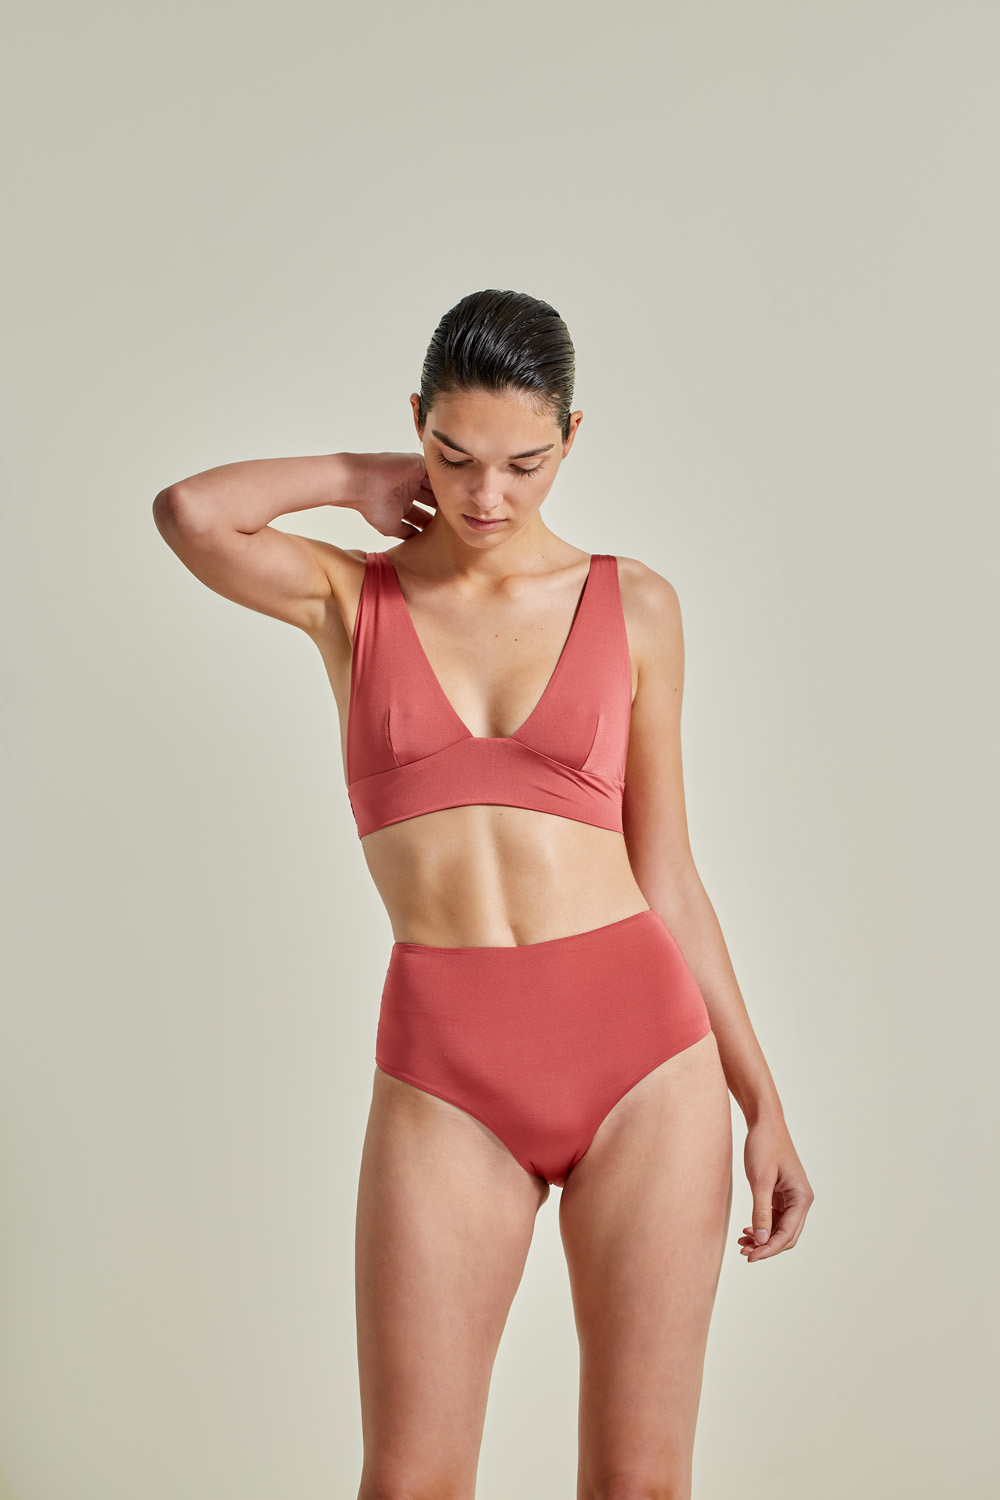 Kapalai Farond, NOW_THEN Sustainable Luxury Swimwear Moda baño sostenible. Eco swimsuits and bikini / Bikinis y bañadores ecológicos. Color blush.